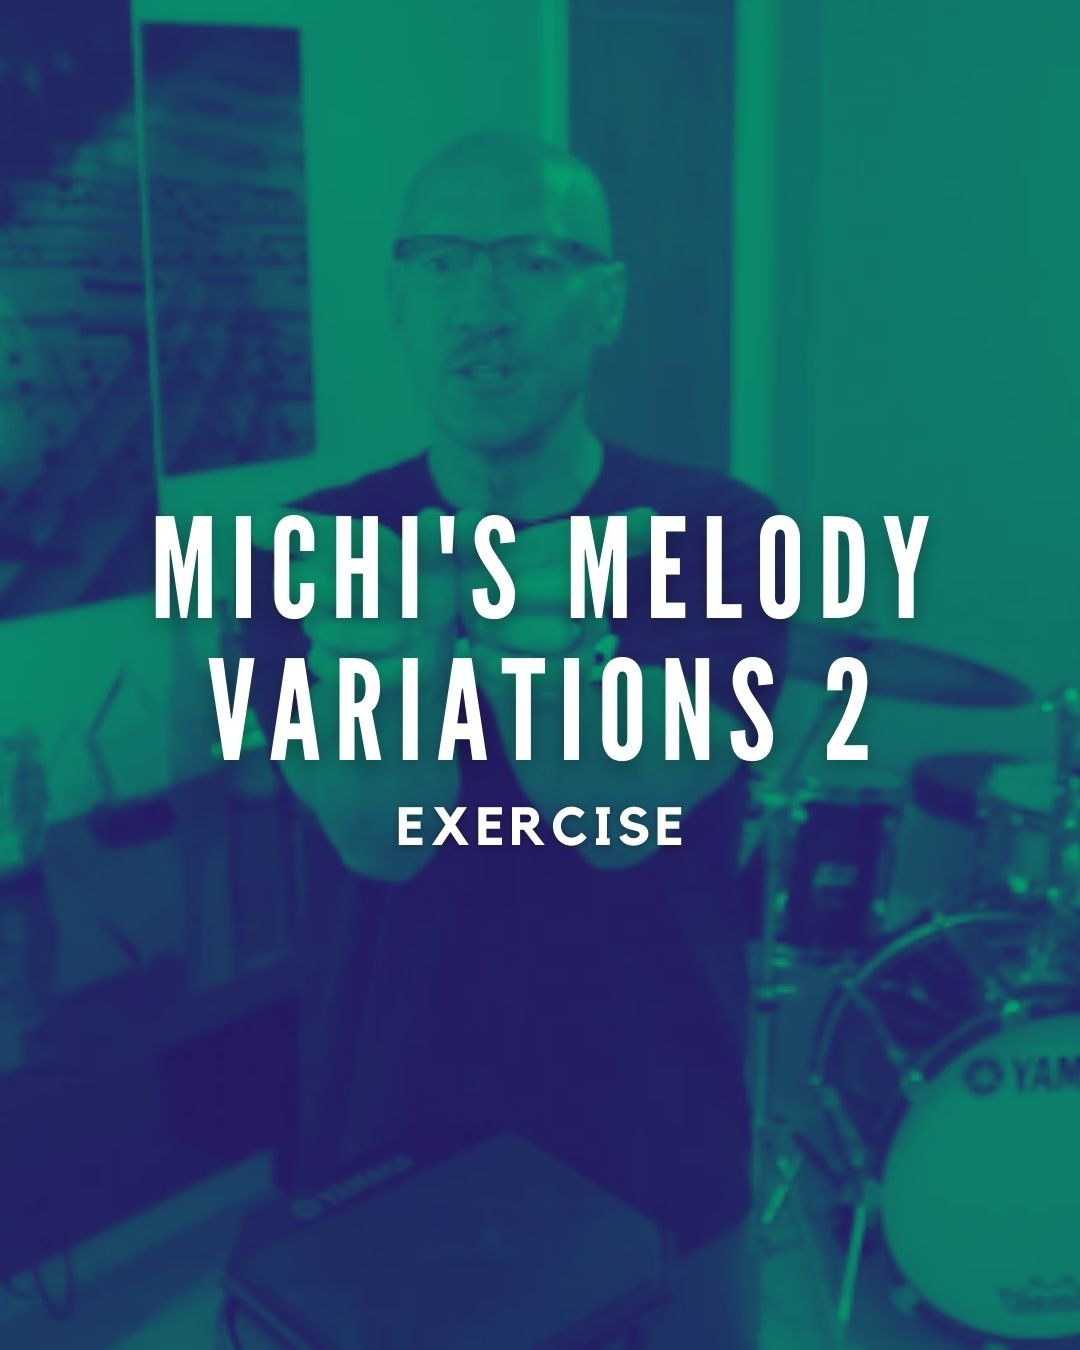 Michi's Melody Variations 2